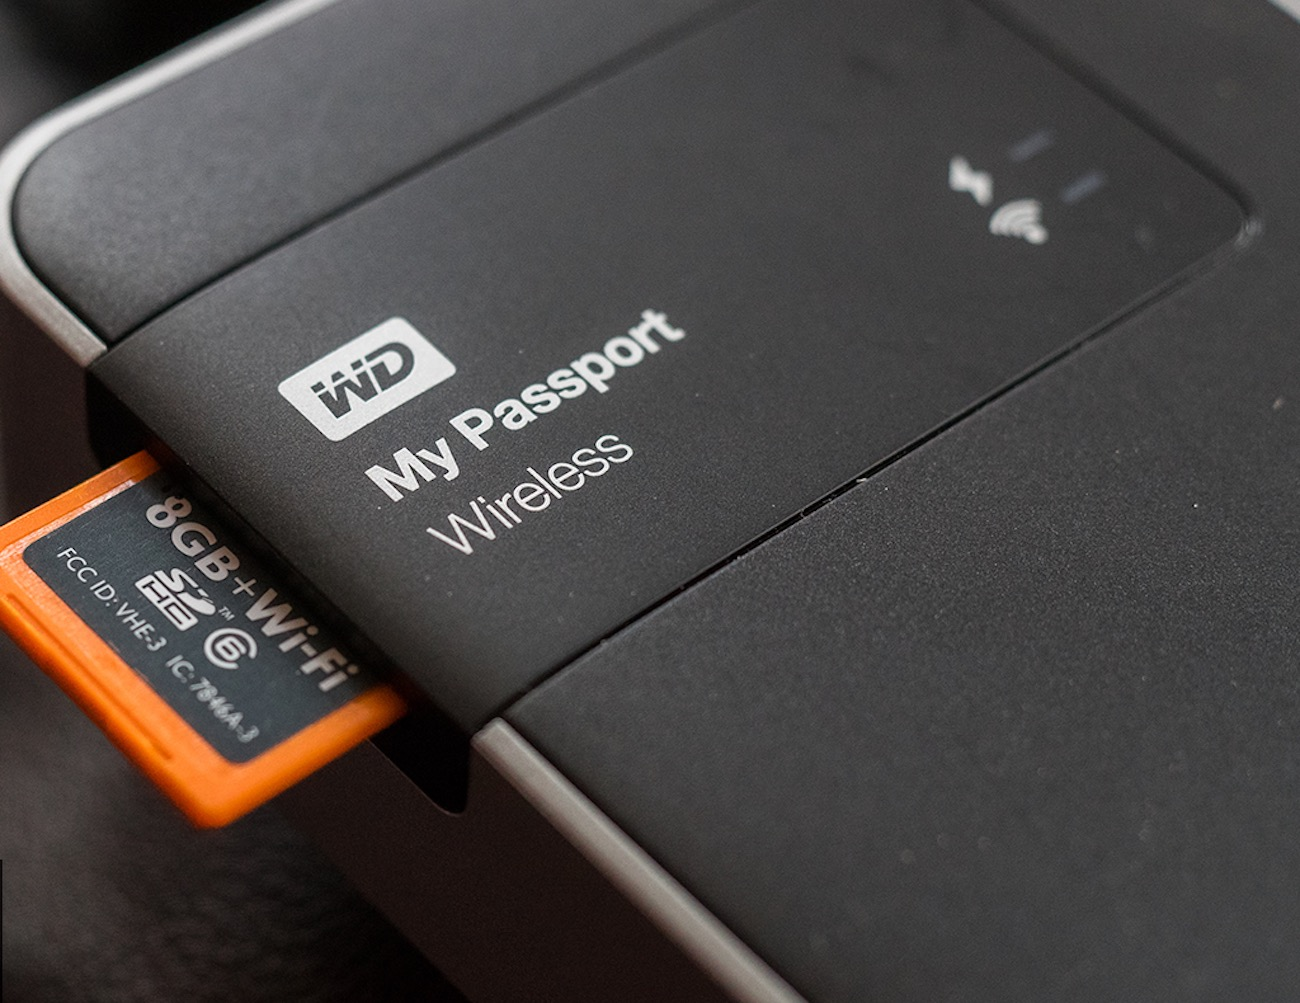 how to connect a wd device to your laptop